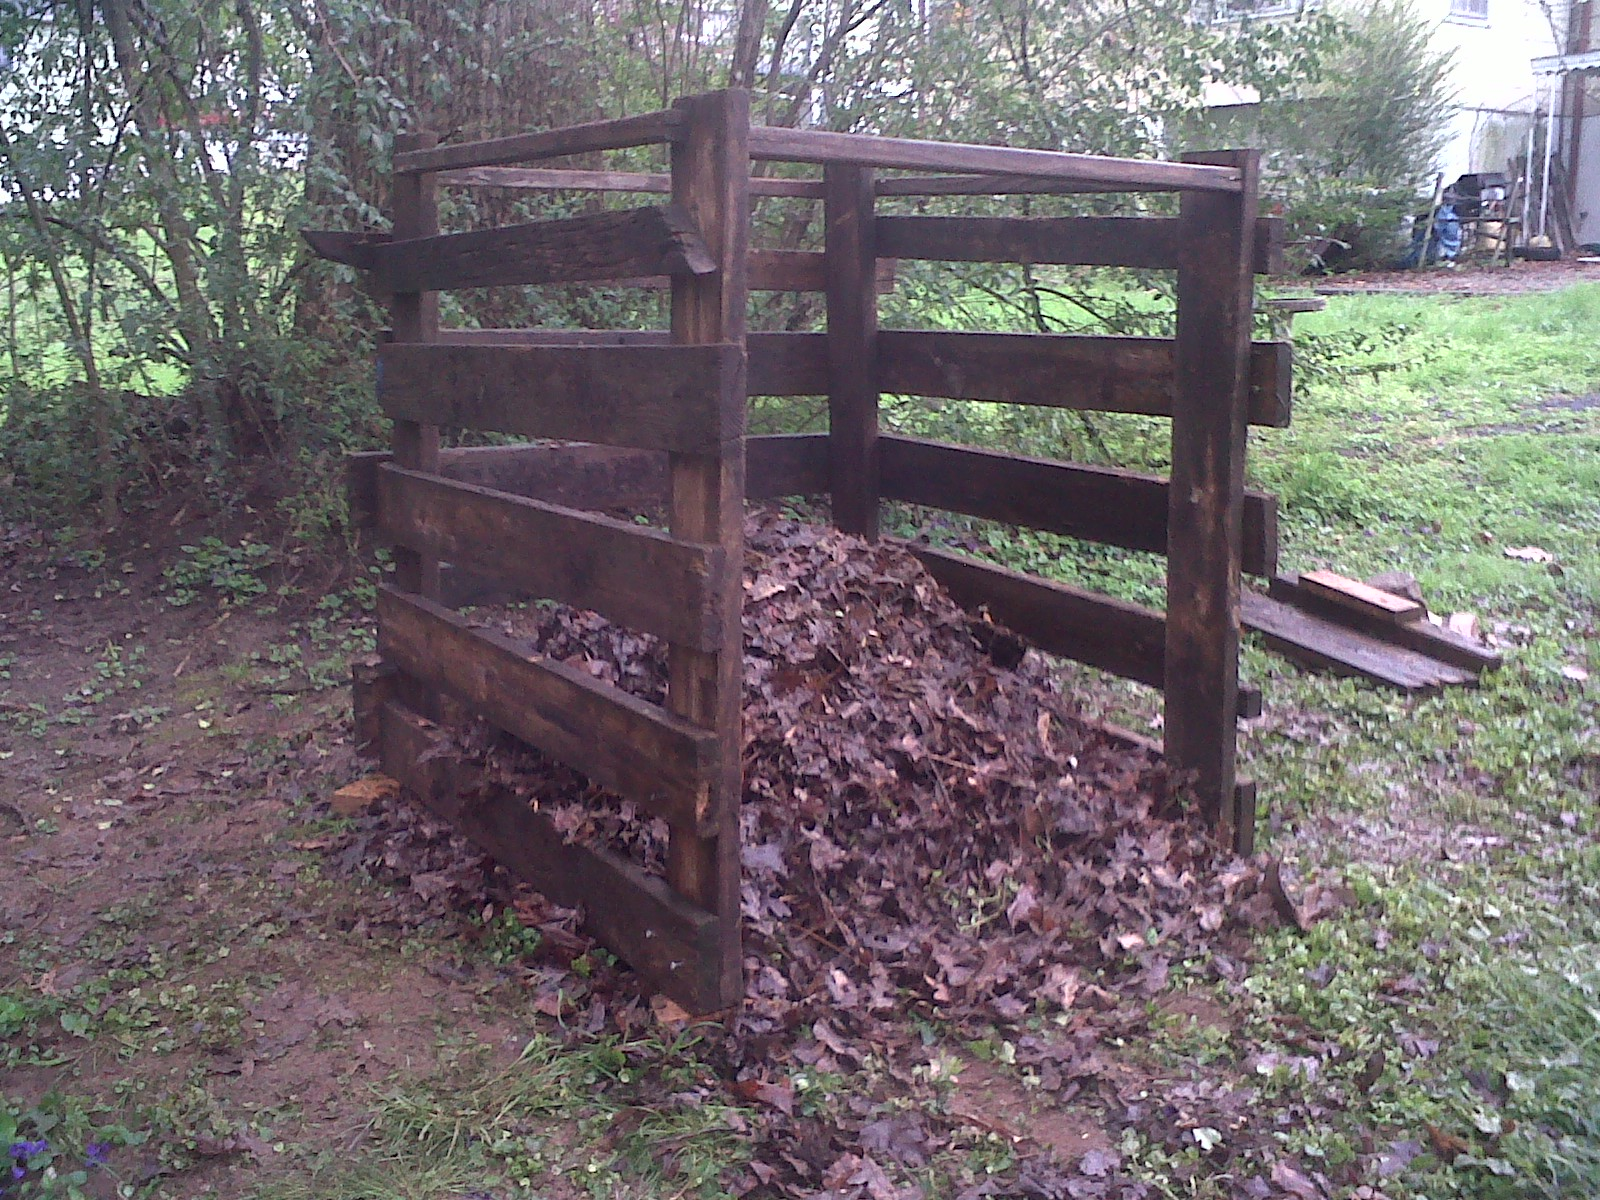 Derang: Build wooden compost bin